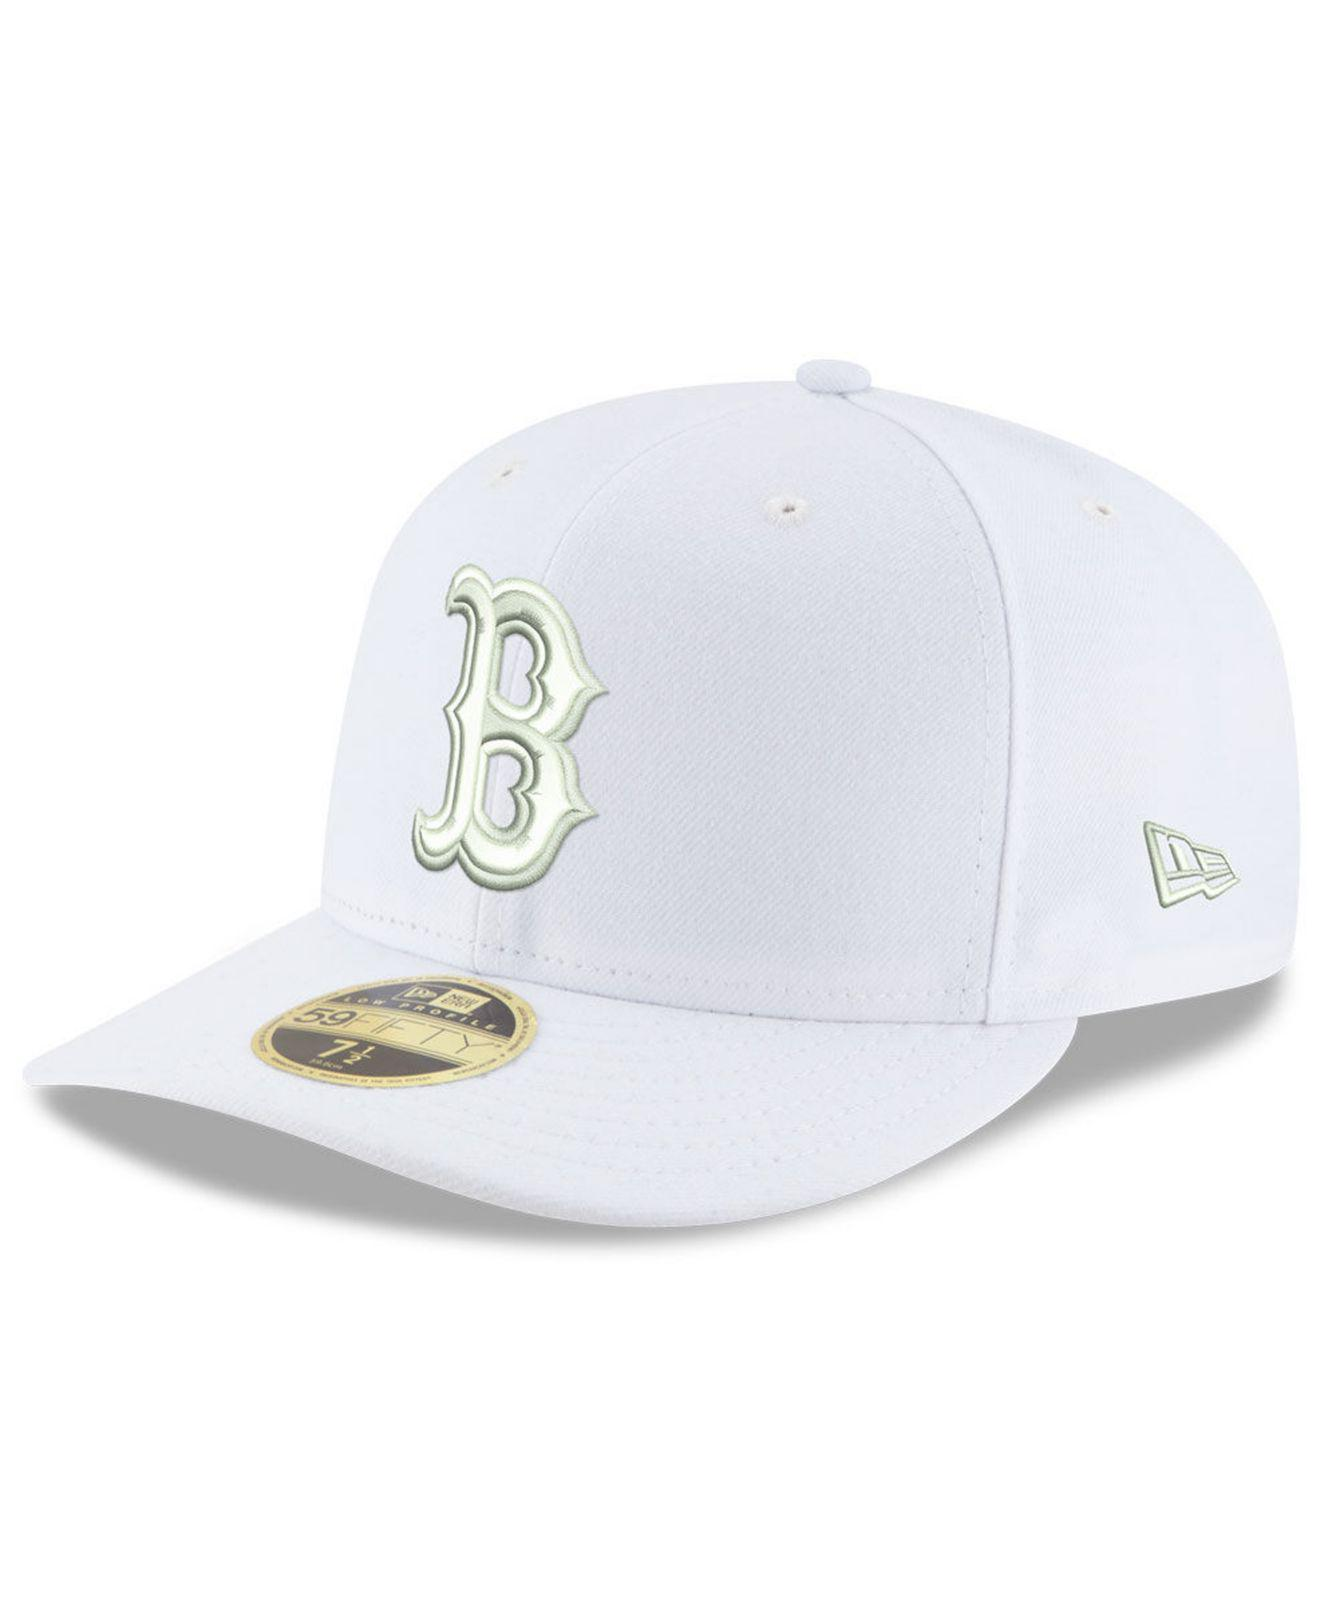 new arrival bd01e 64302 KTZ - Boston Red Sox Triple White Low Profile 59fifty Fitted Cap for Men -  Lyst. View fullscreen